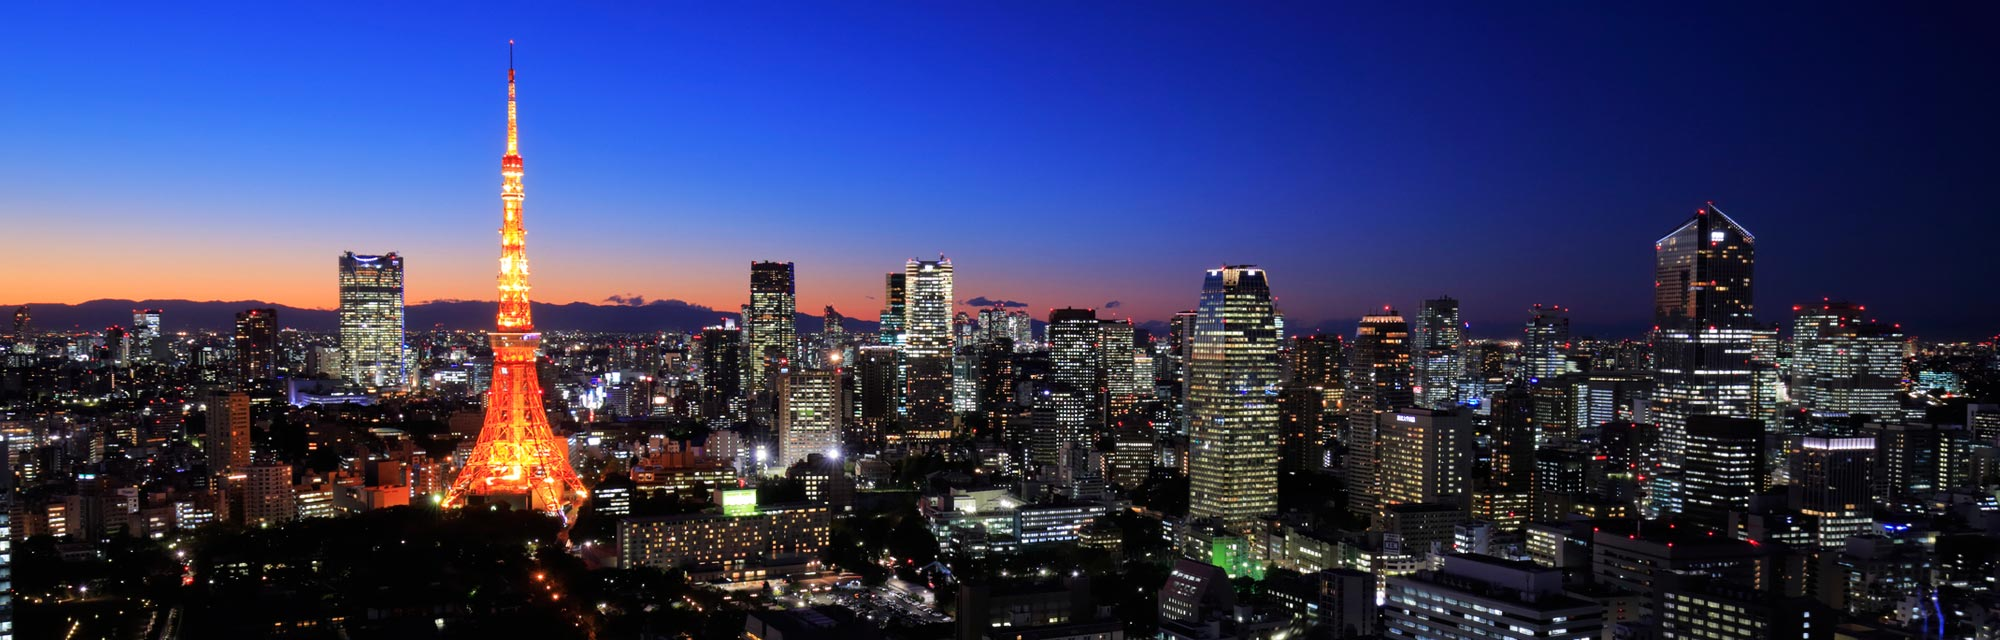 tokyo | All the action from the casino floor: news, views and more